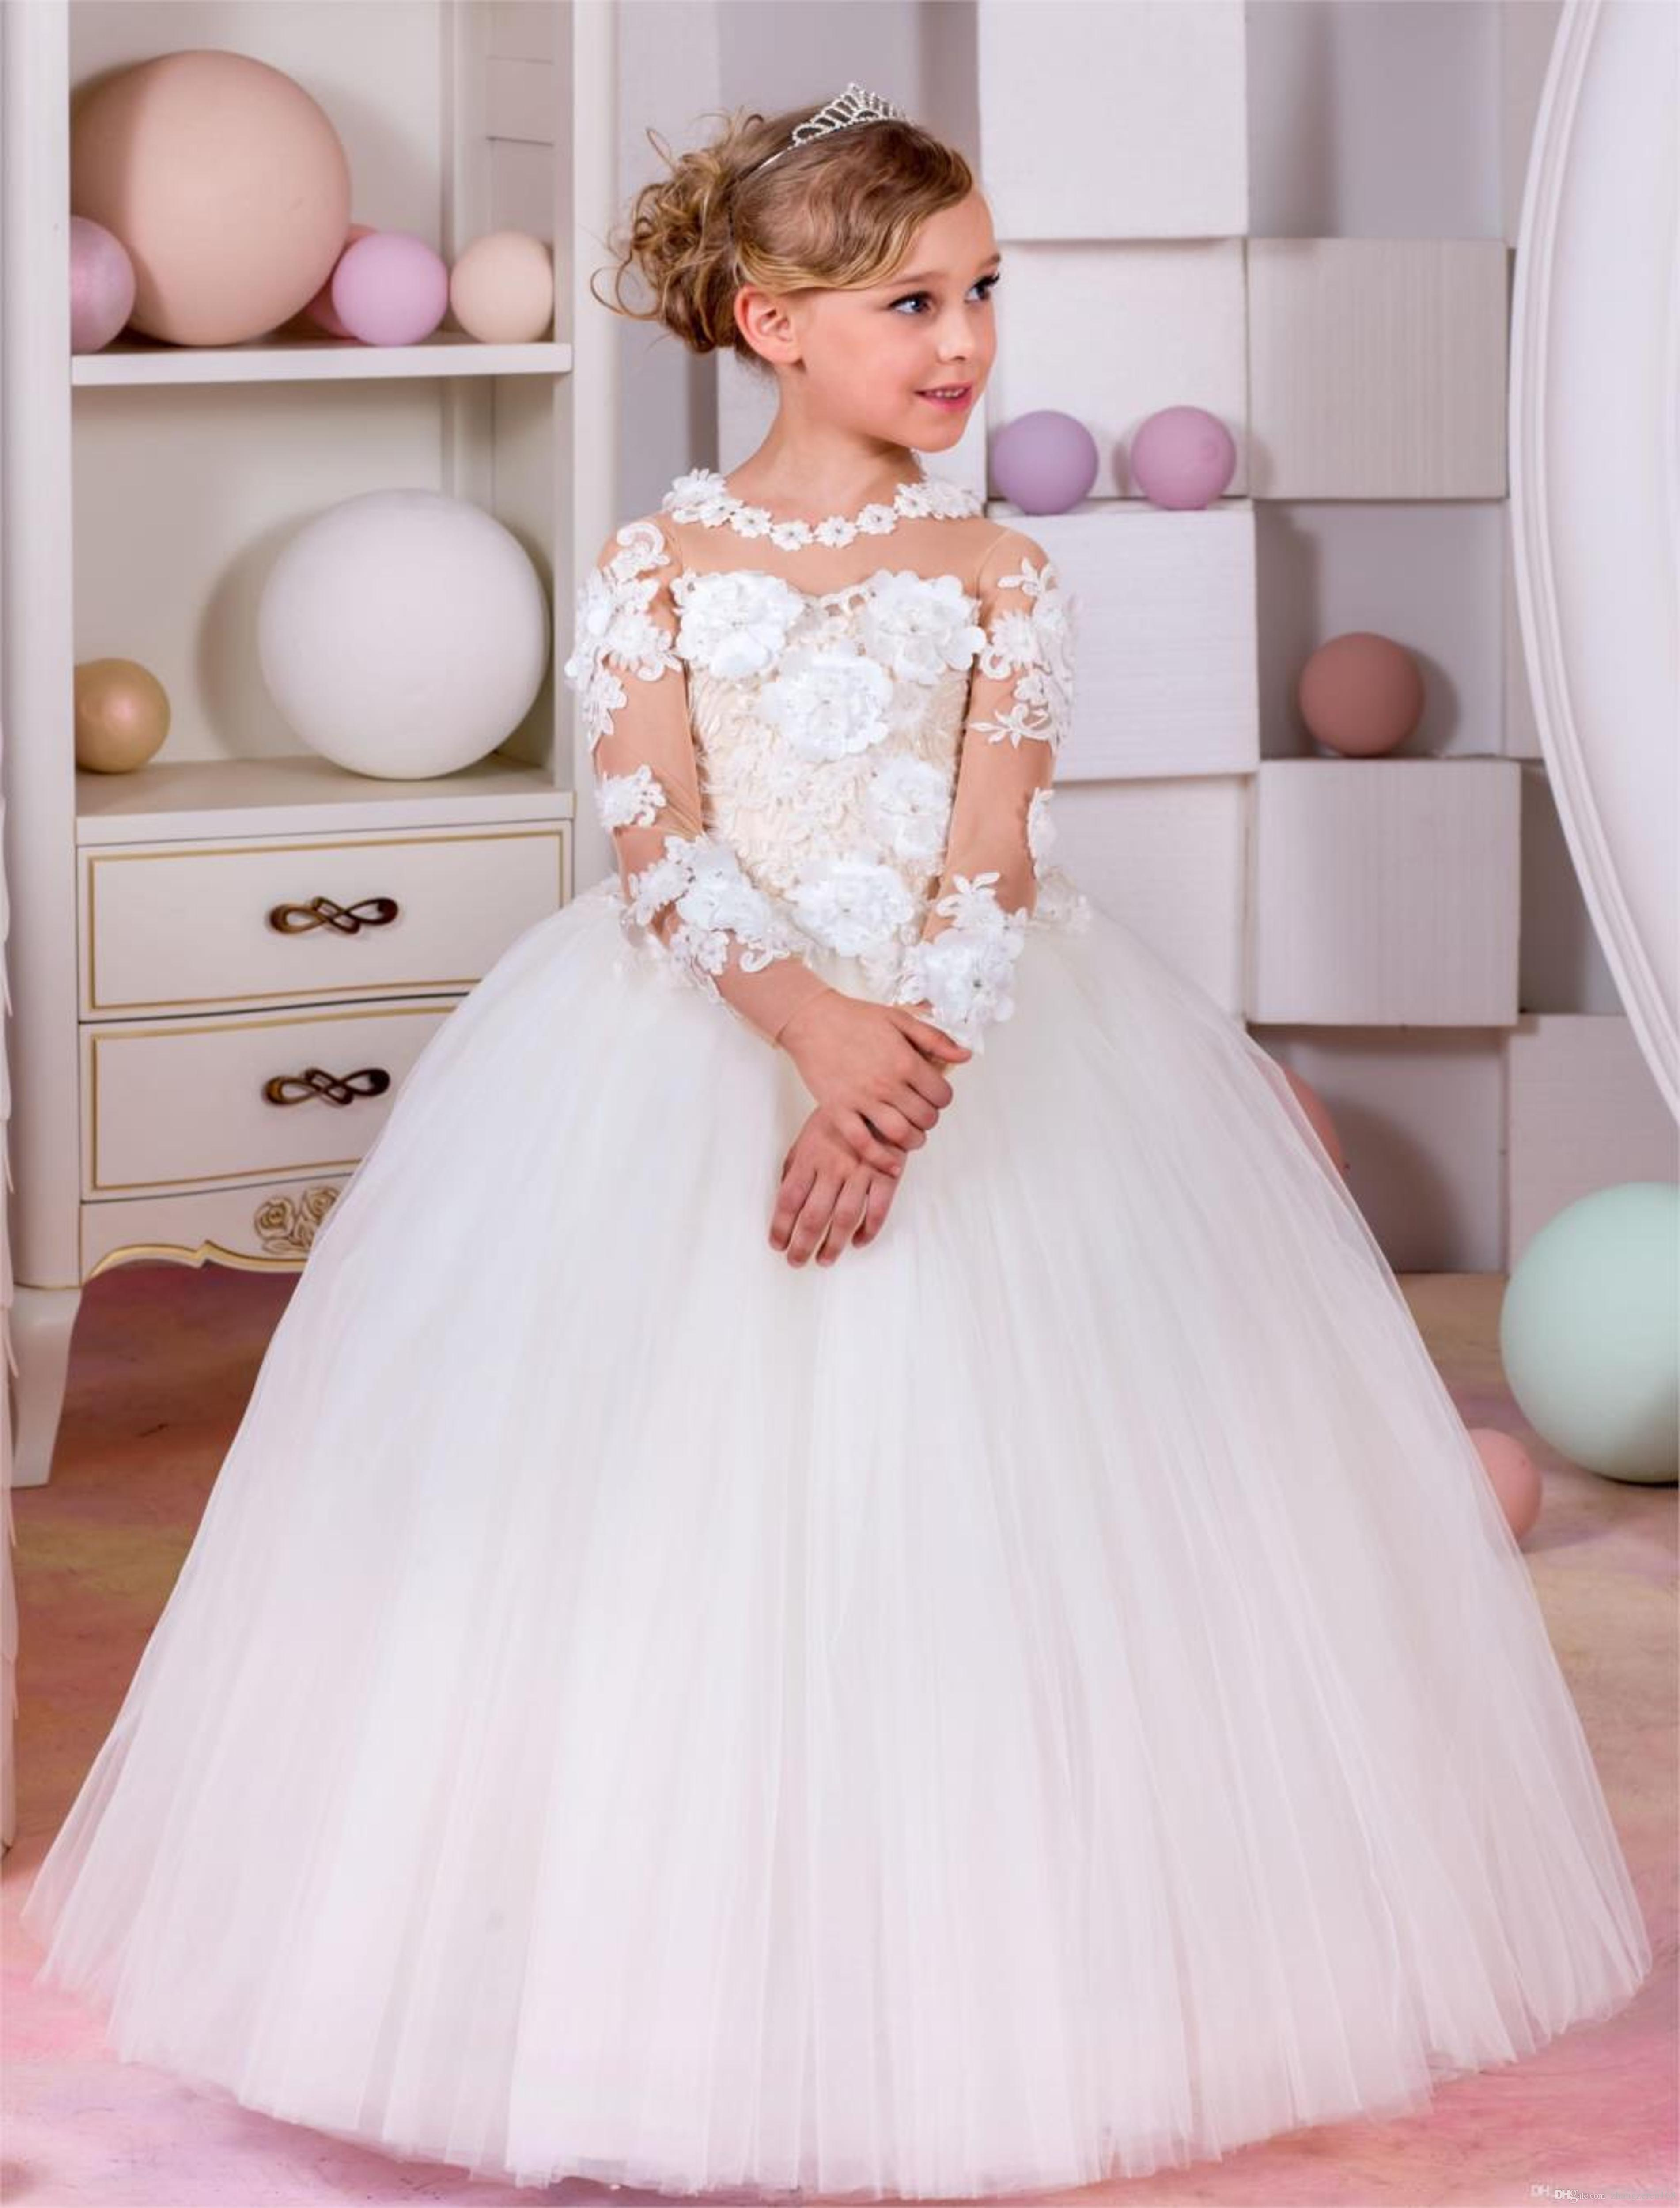 Fancy Baby Christmas Dresses Newest and Cutest Baby Clothing